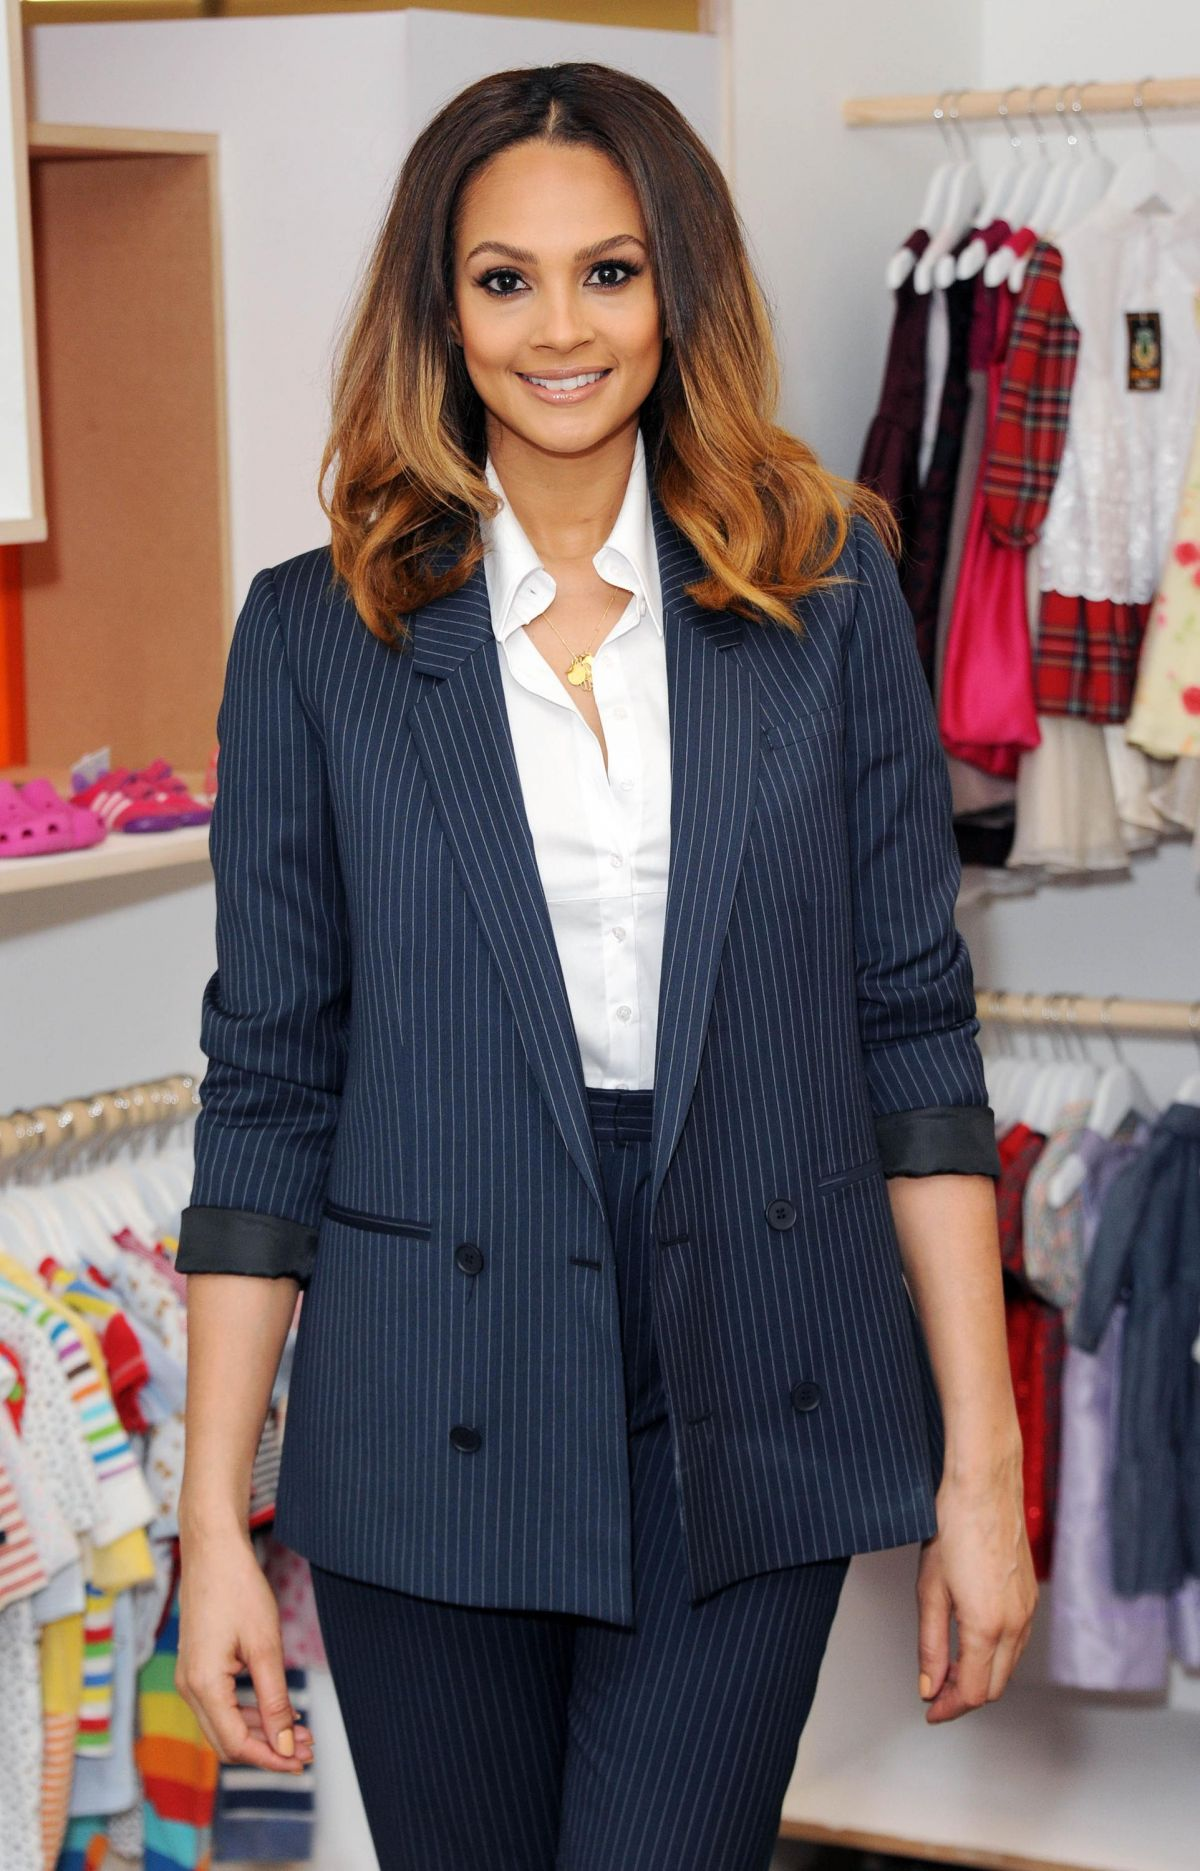 ALESHA DIXON at Marks & Spencer Kids Shwop Boutique Photocall in London